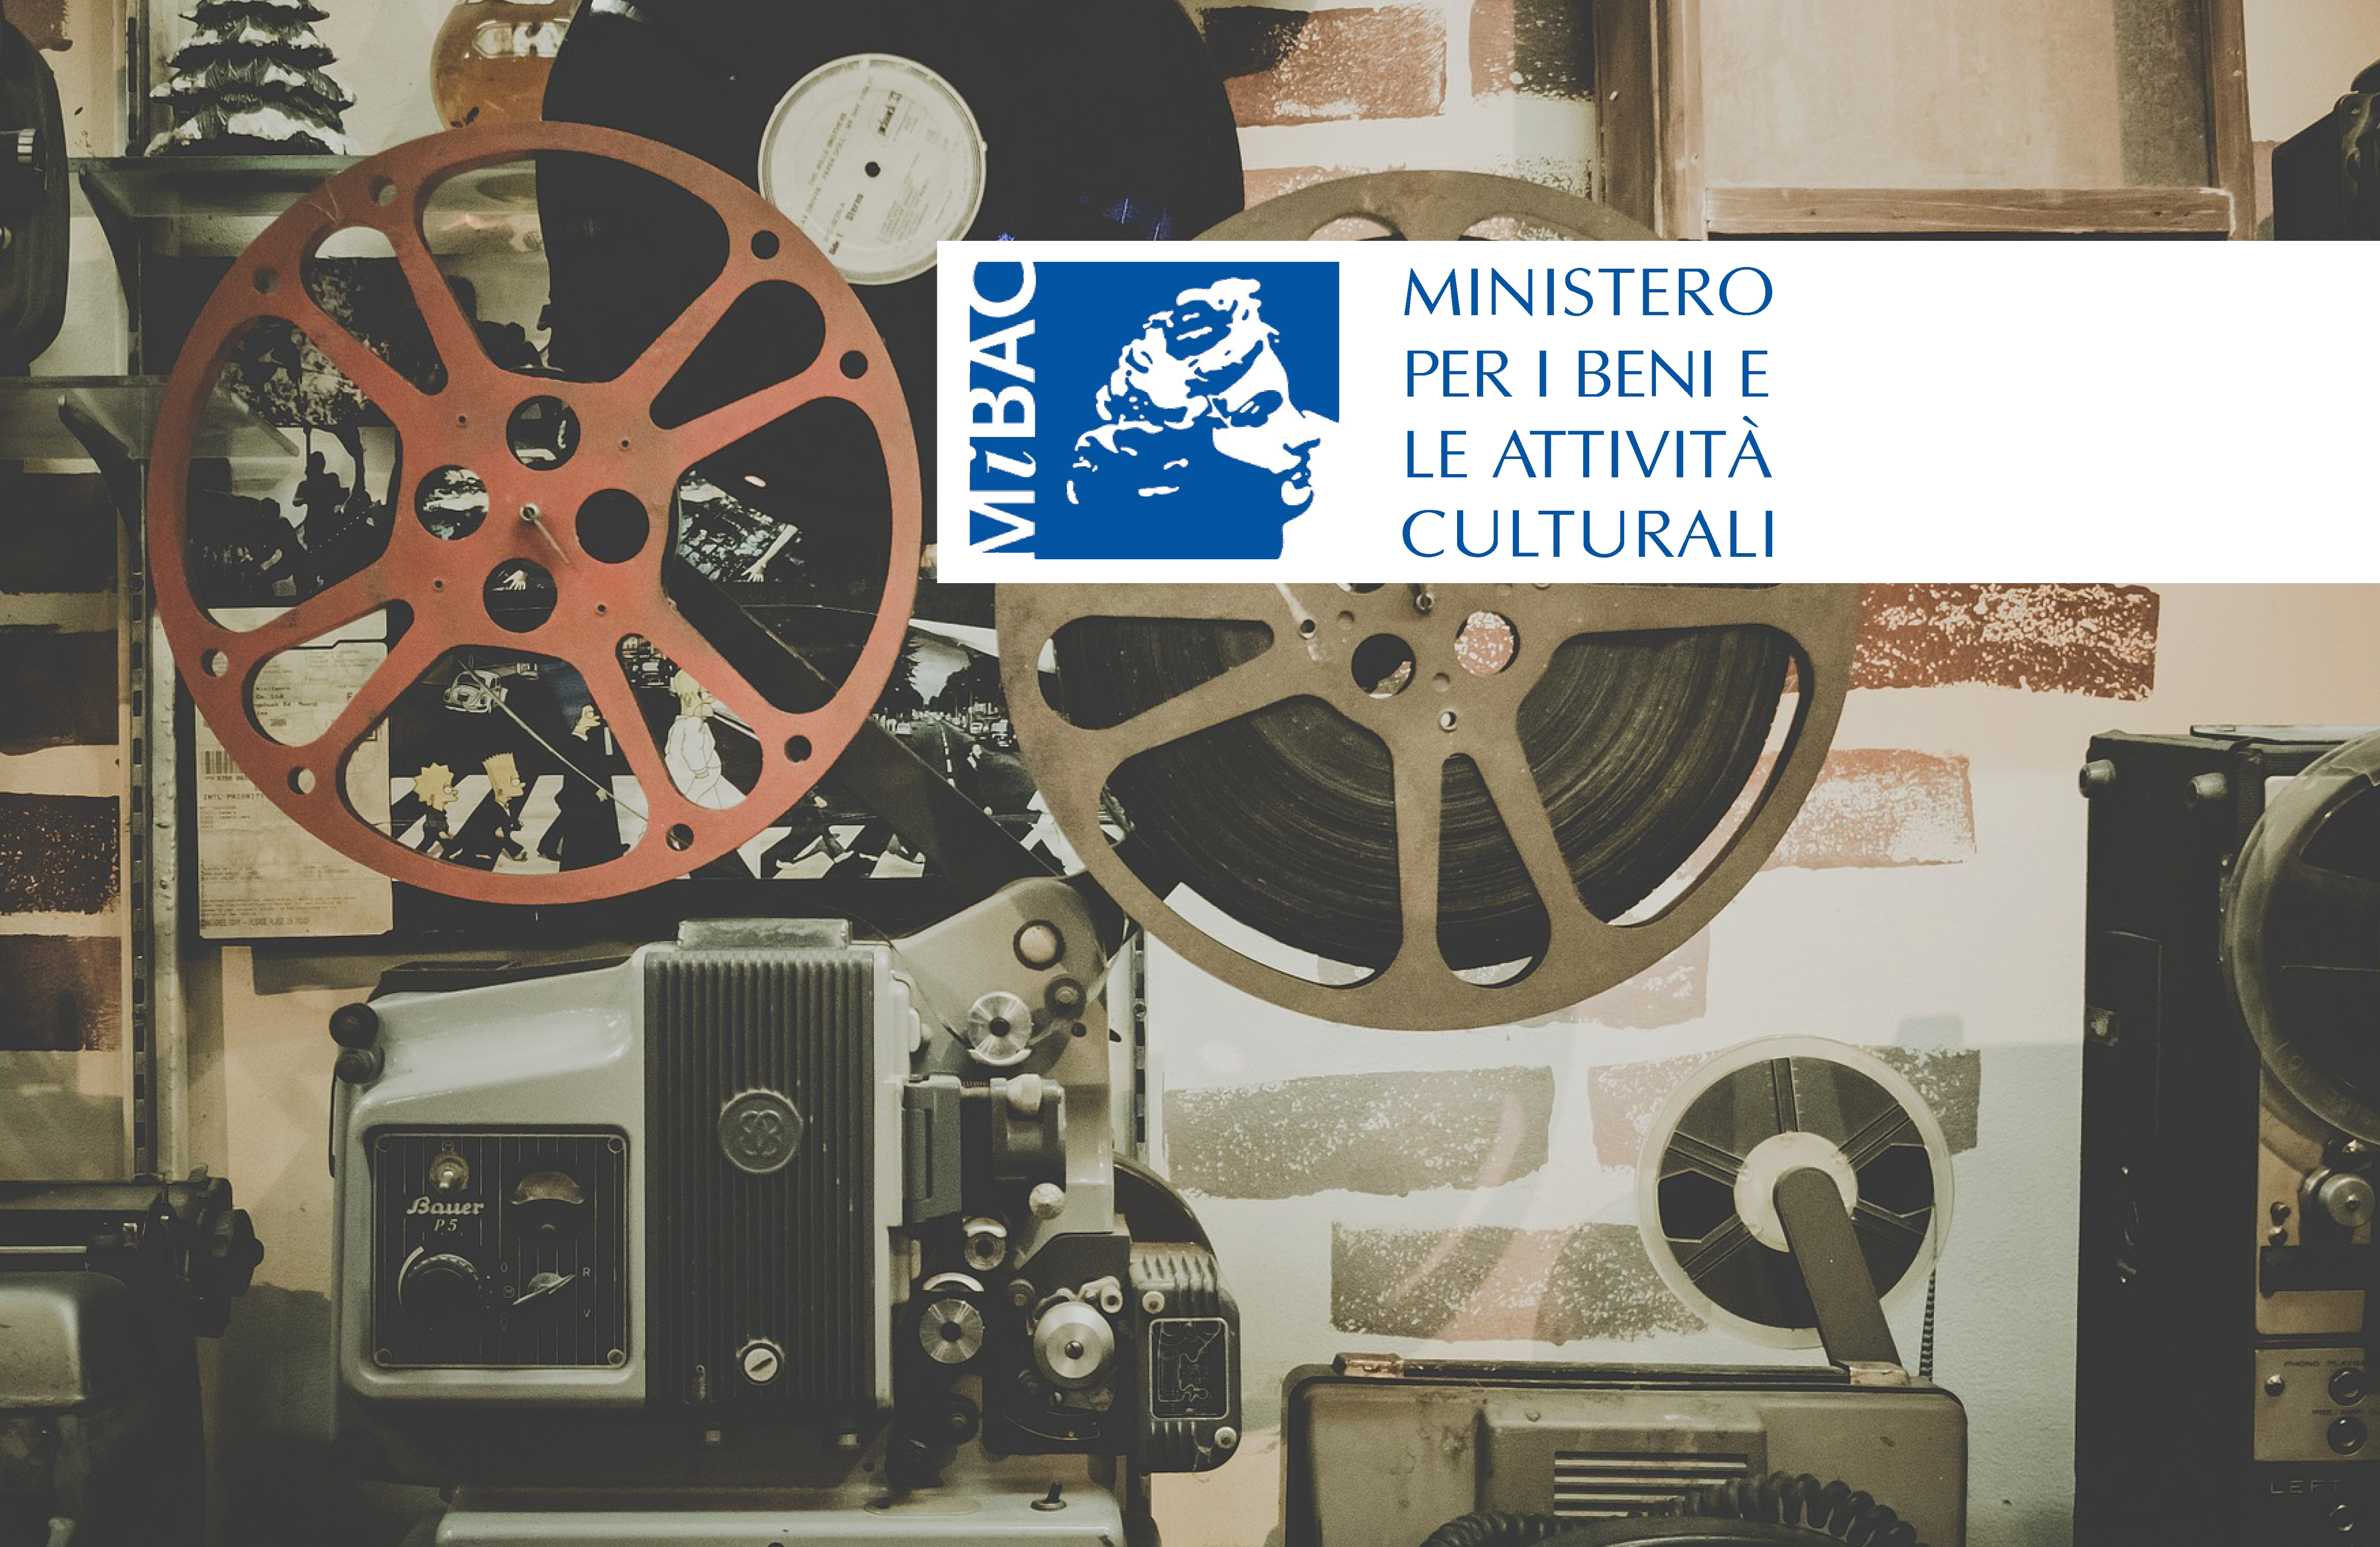 LATTANZIO Monitoring & Evalutation for the Italian Ministry of cultural heritage (MiBAC)